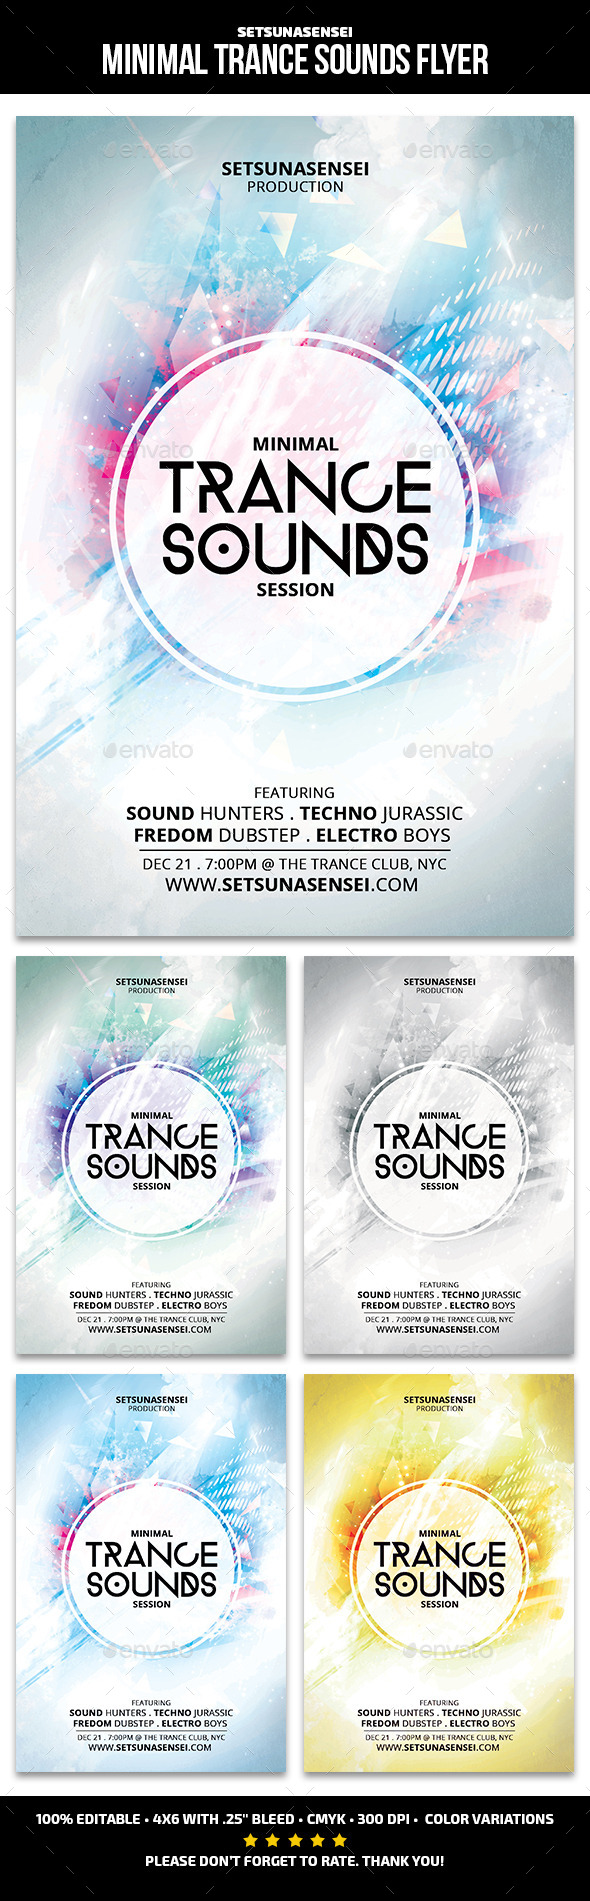 Minimal Trance Sounds Flyer - Clubs & Parties Events